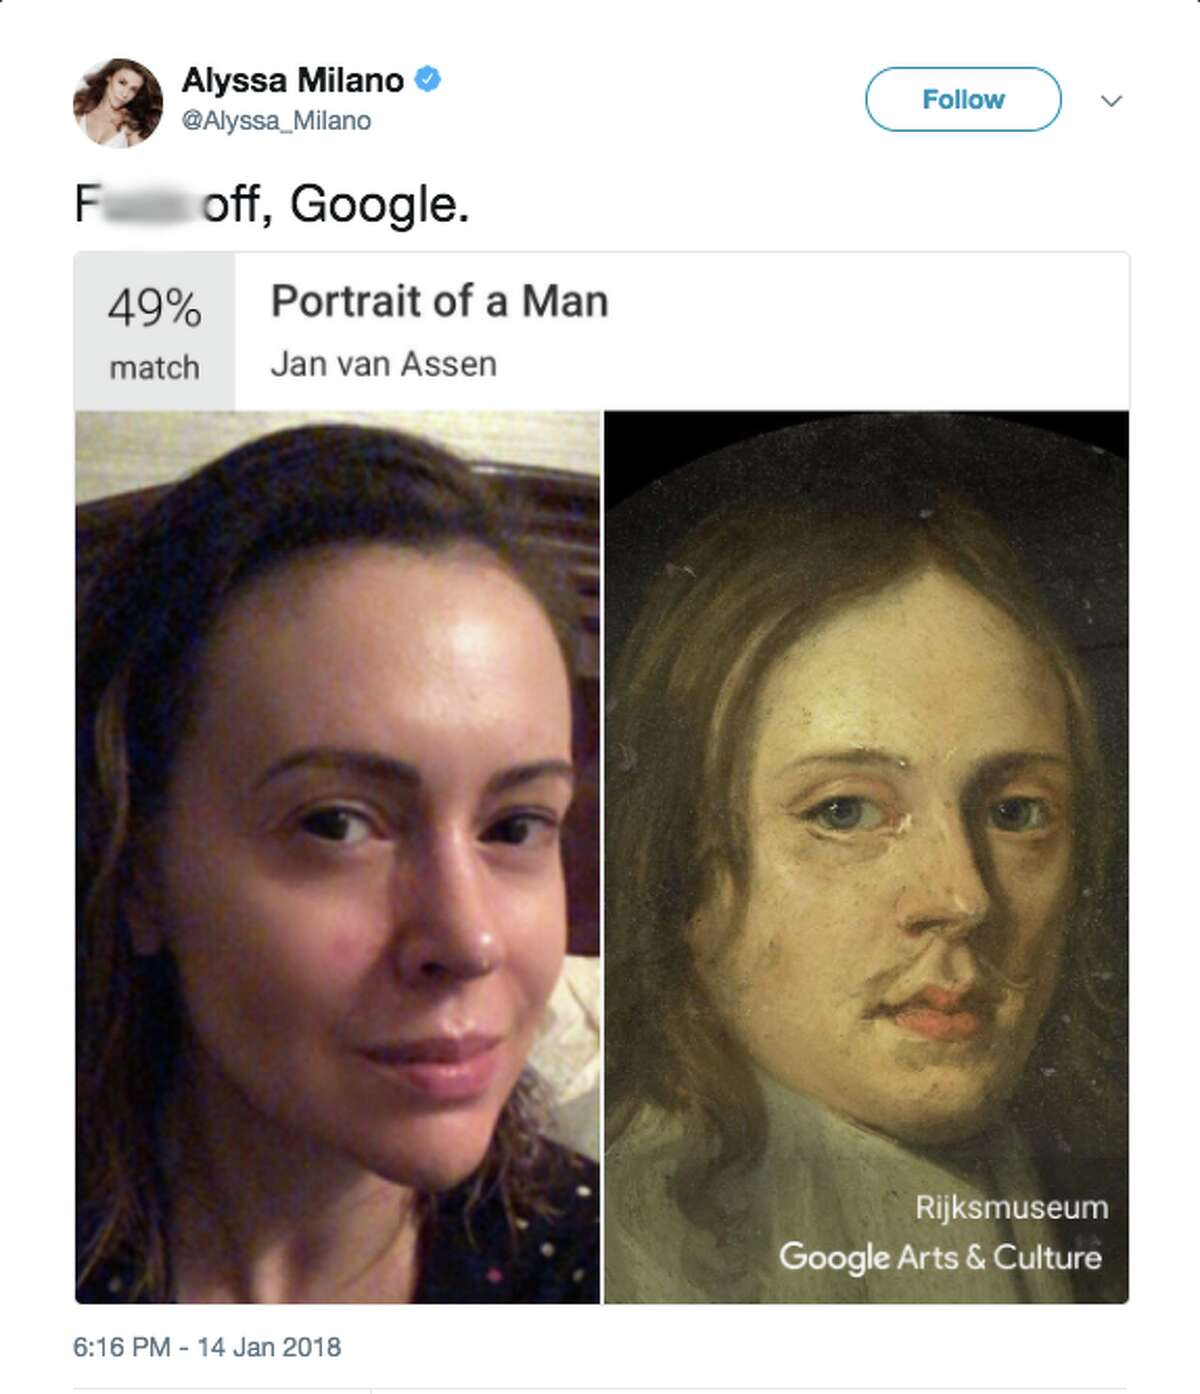 Actress Alyssa Milano did not seem pleased with her art doppelganger, using an expletive when sharing the comparison.